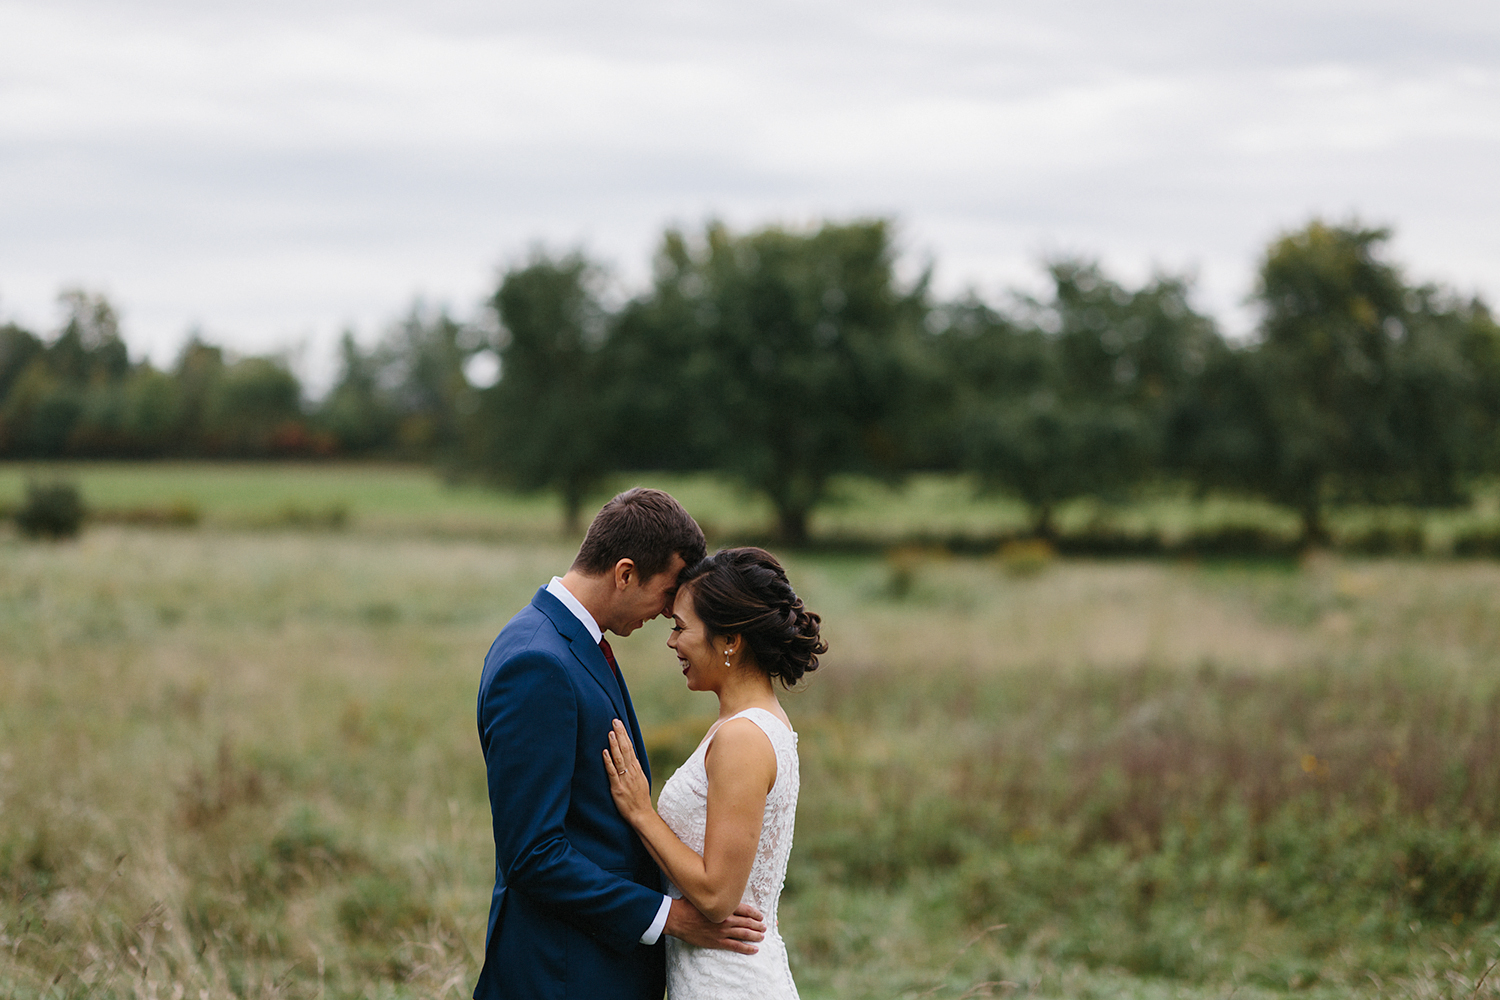 bride-and-groom-portraits-in-field-epic-romantic-moody-real-moments-at-bellamere-winery-toronto's-best-wedding-photographers-candid-documentary-style-photography-london-ontario-winery-wedding-inspiration.jpg